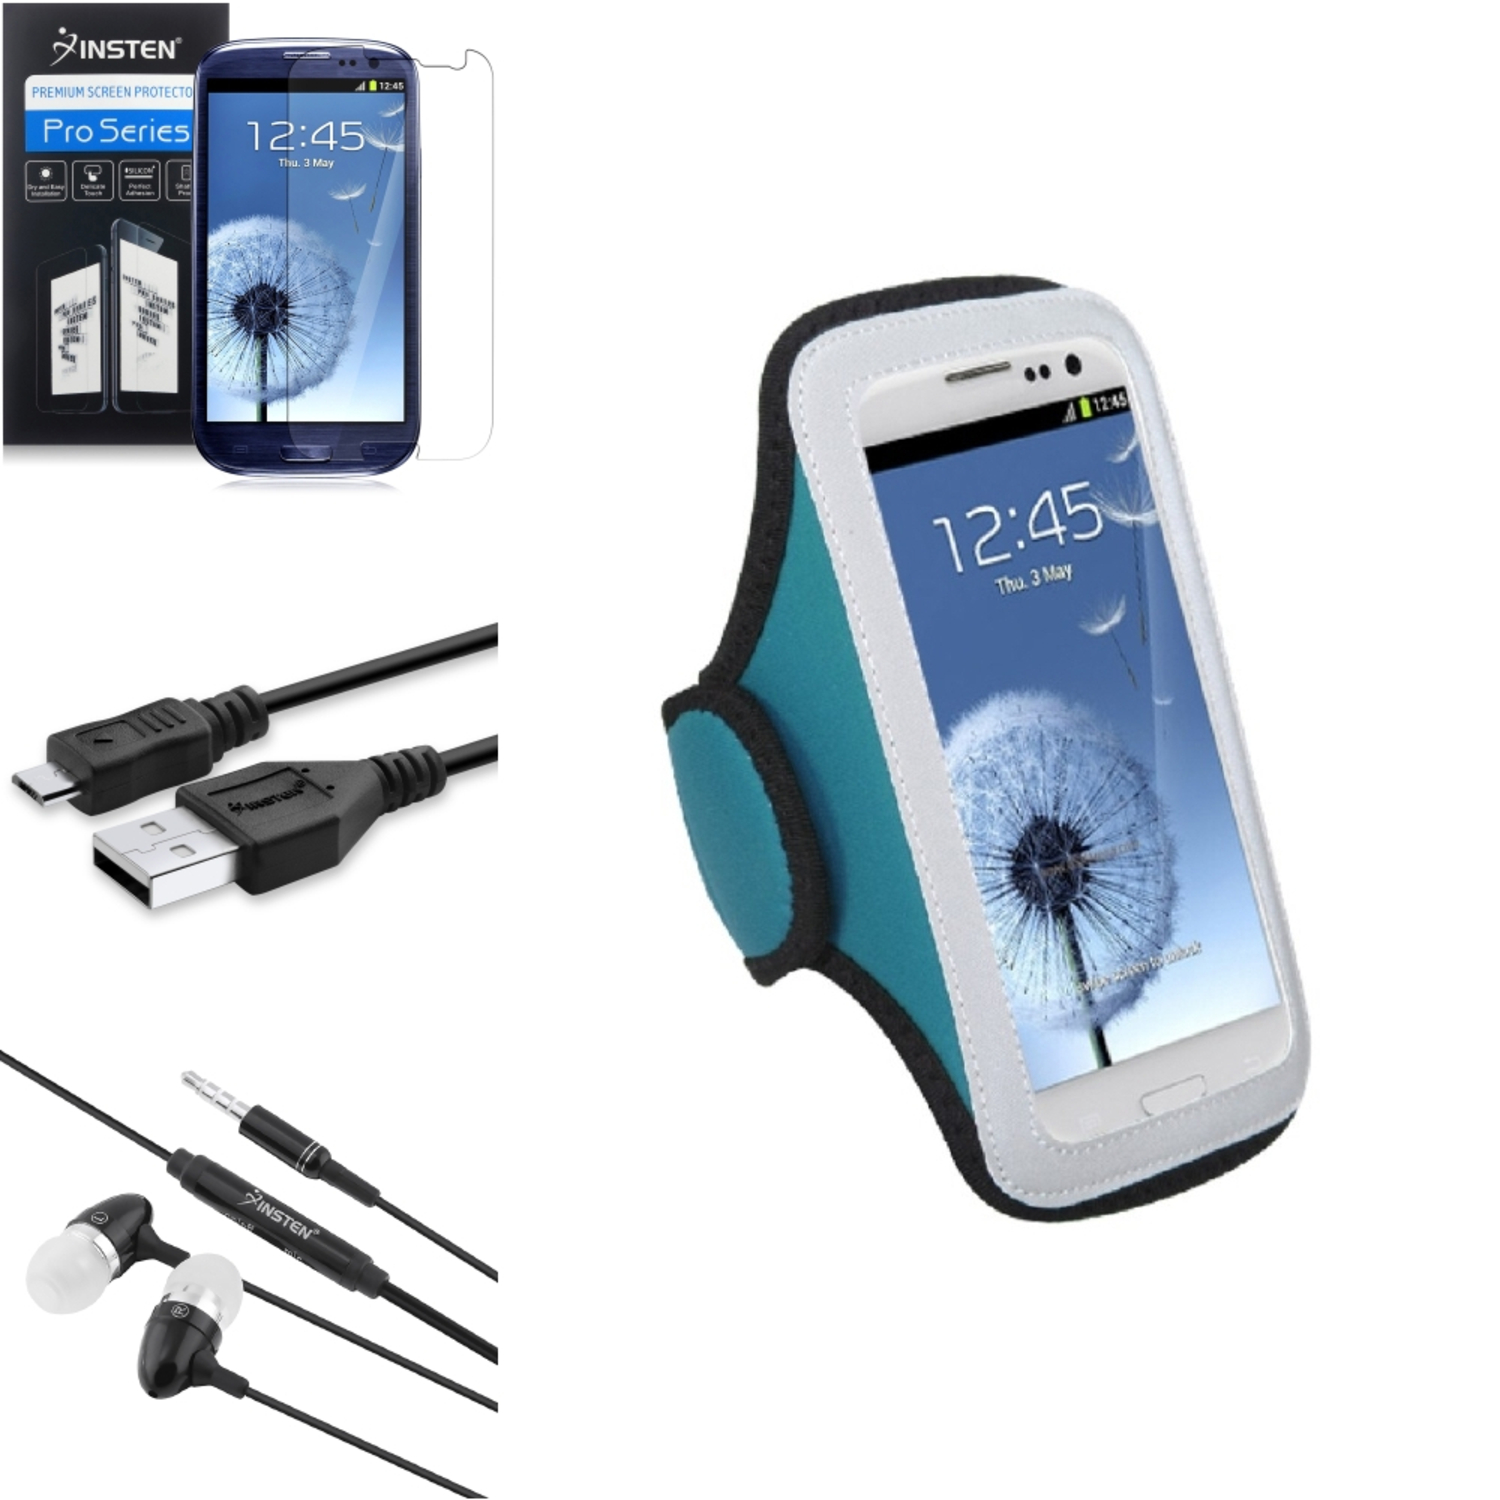 Insten Blue GYM Armband Case Clear Pro USB Blk Headset For Samsung Galaxy S III i9300